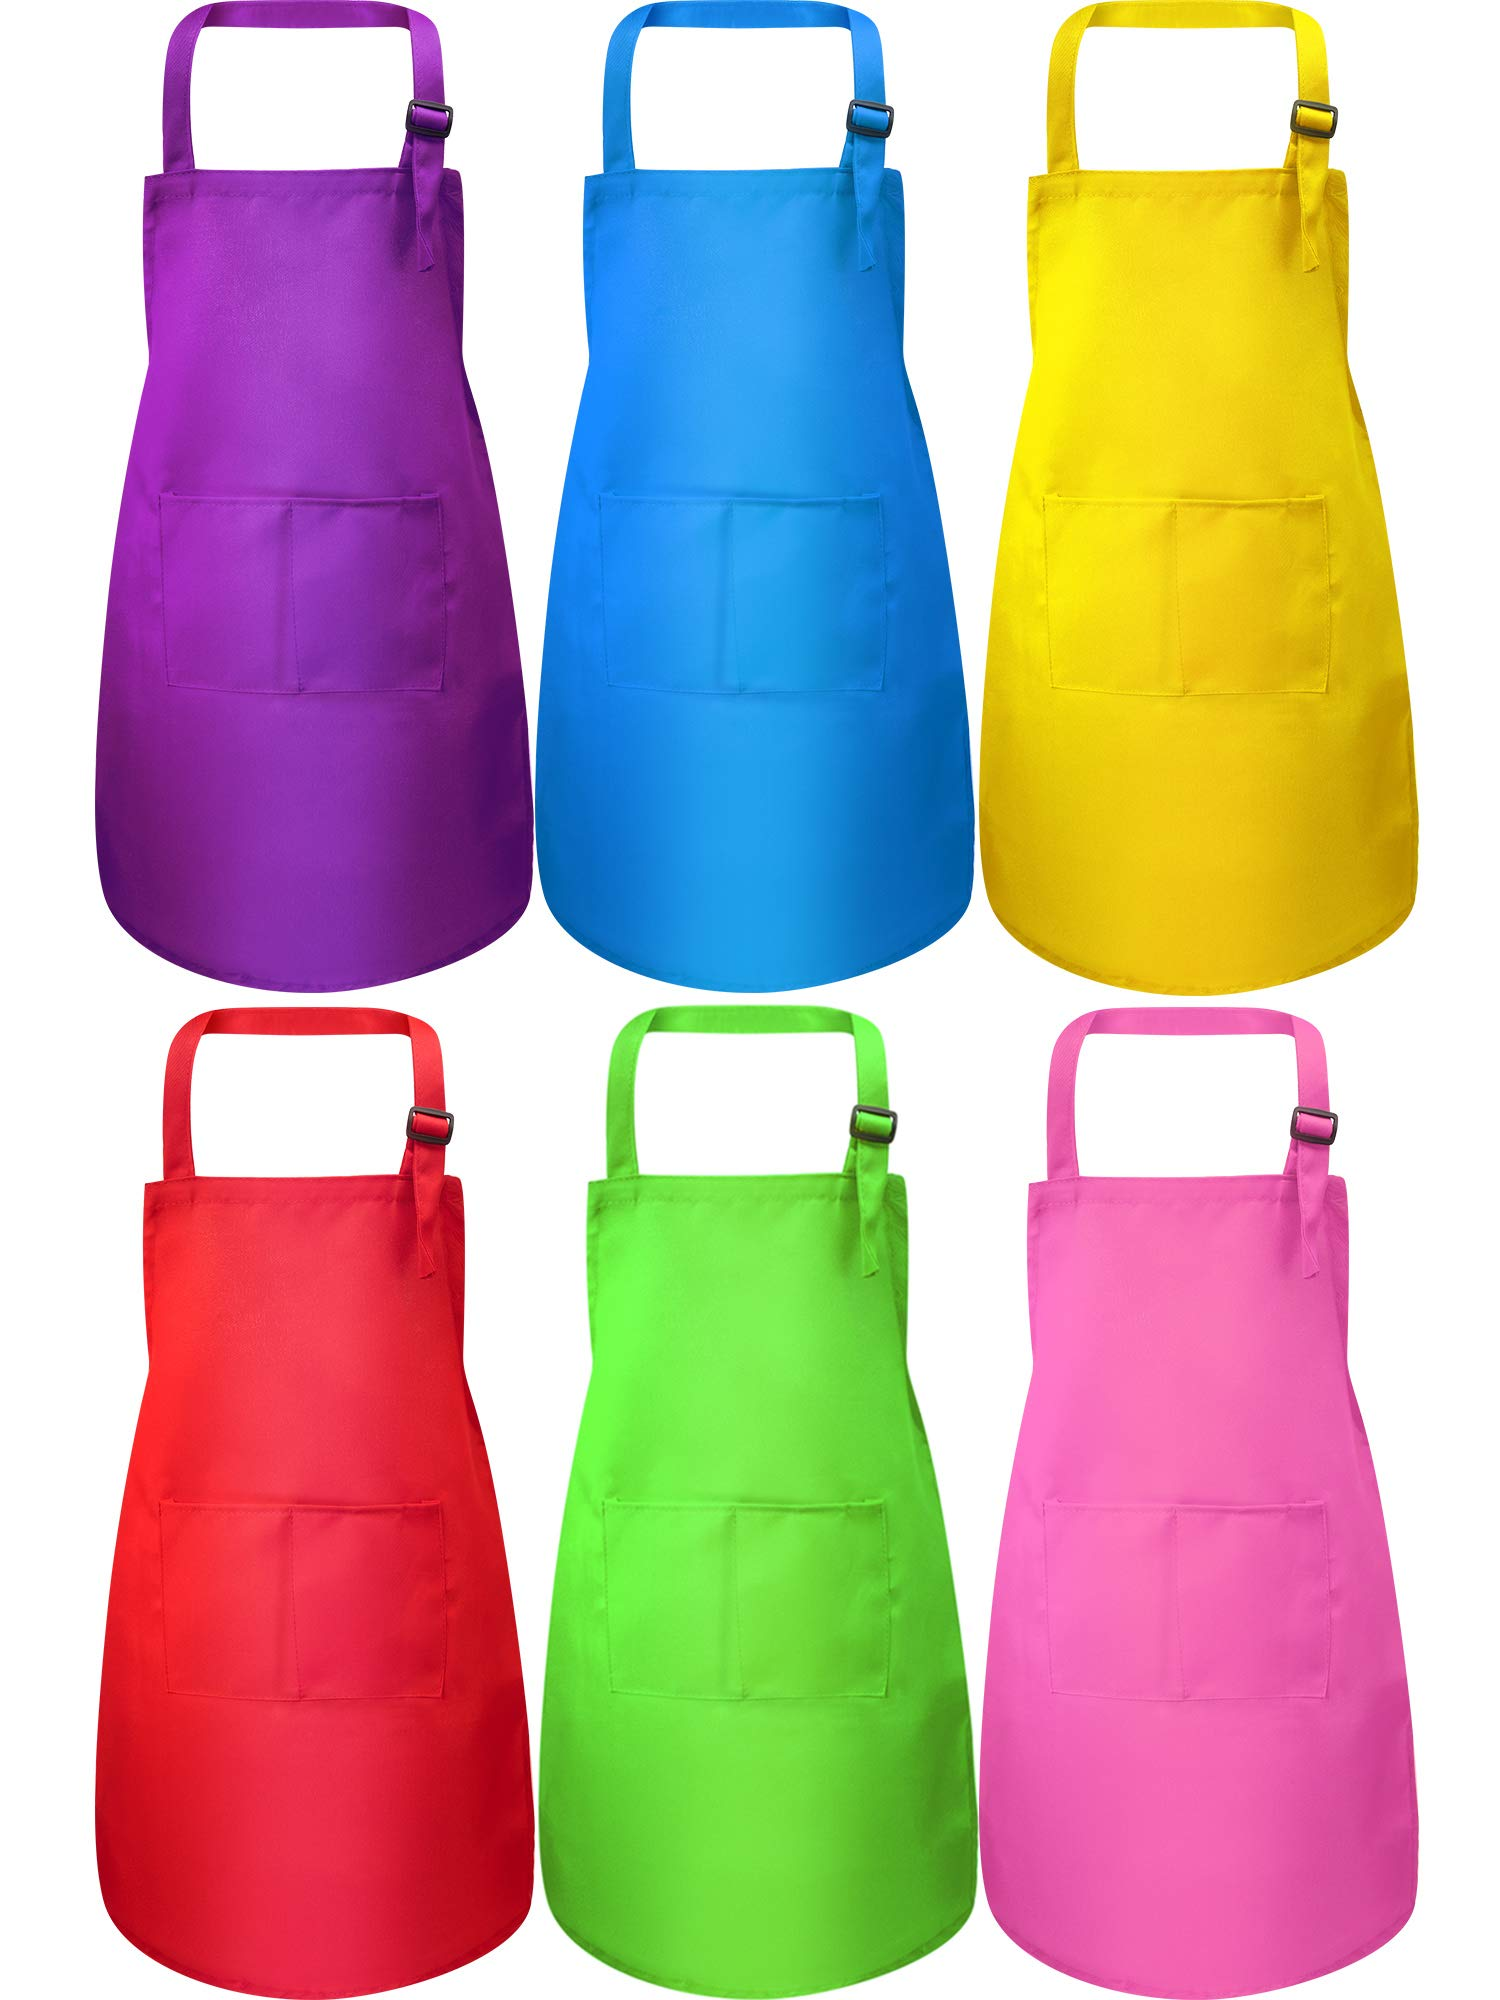 Syhood 6 Pieces Kids Apron with Pocket Adjustable Children Chef Apron for Baking Painting Cooking (Color 1, Large) by Syhood